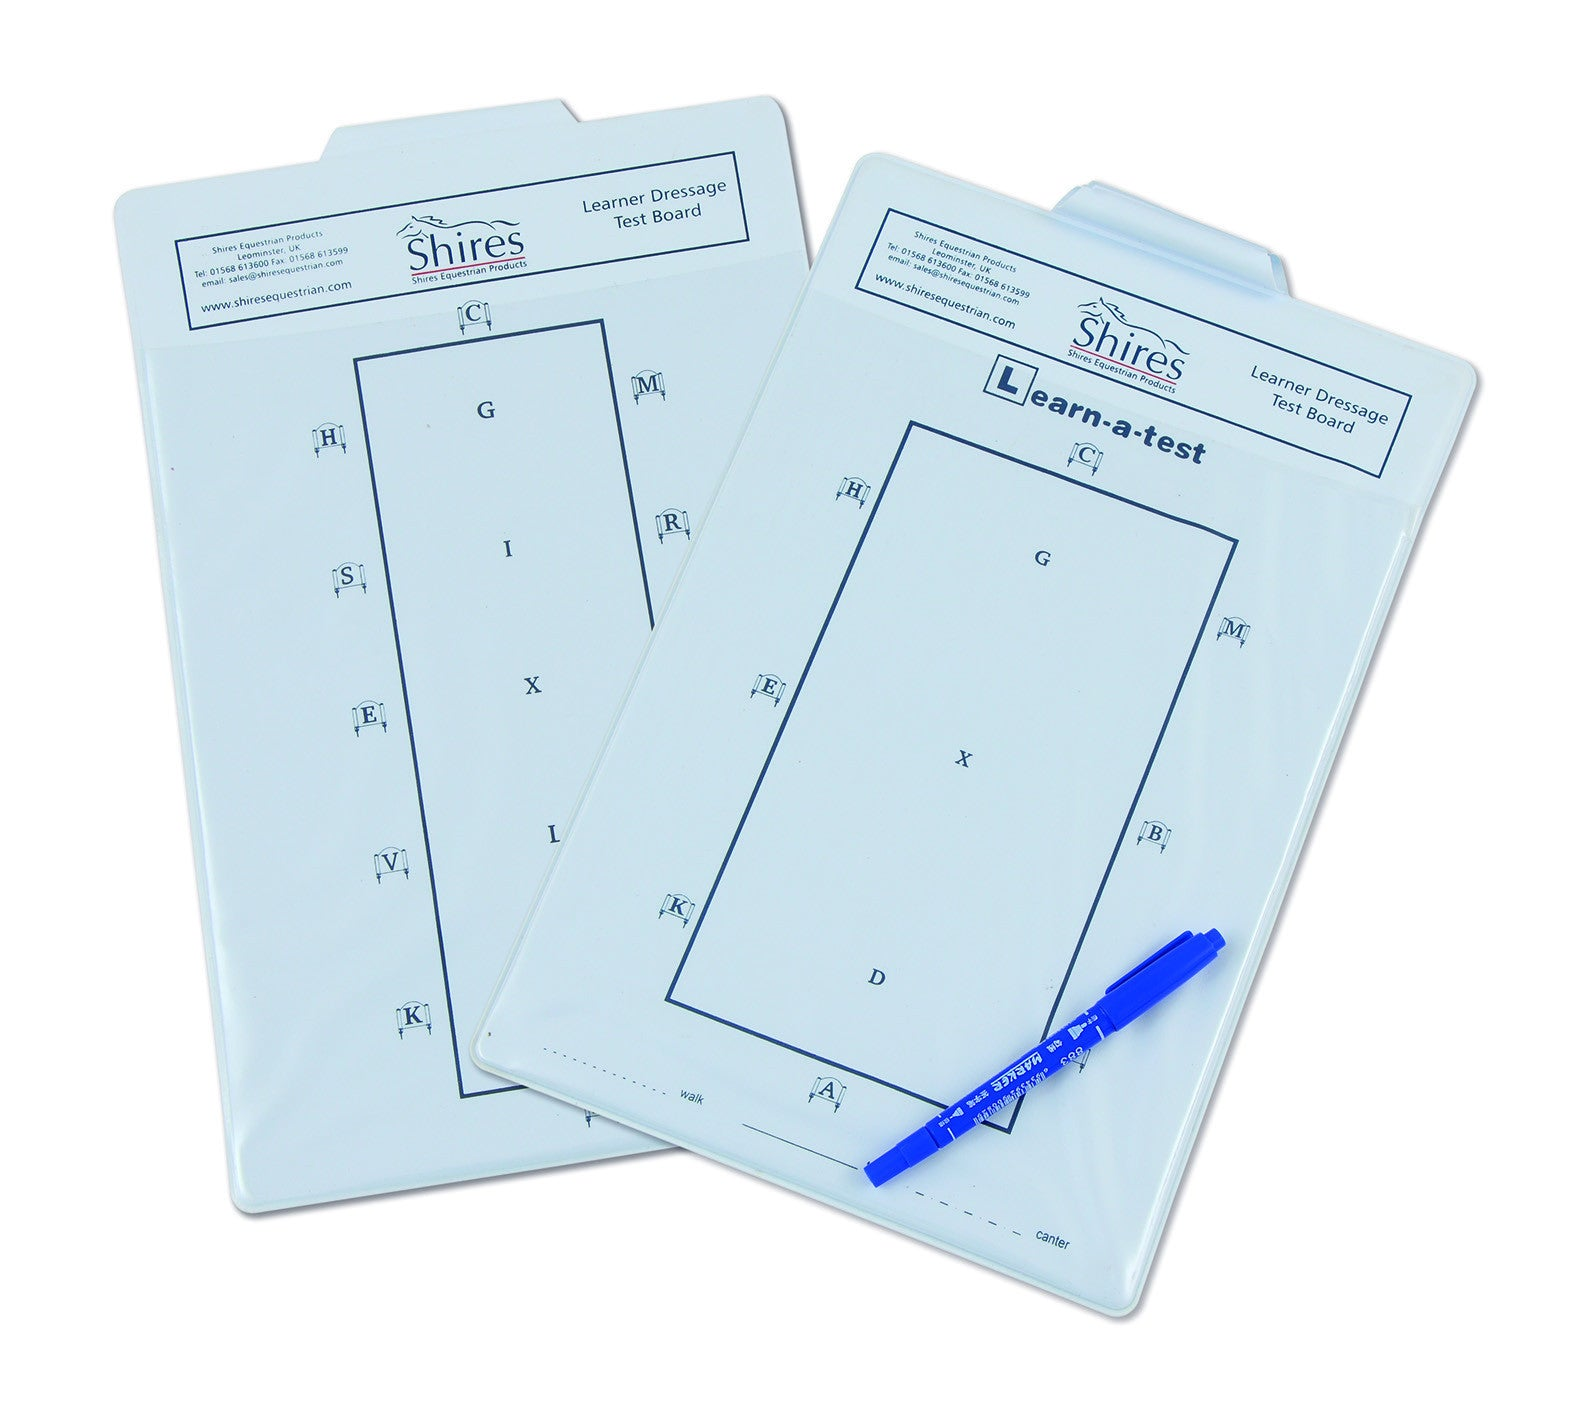 Learner Dressage Test Board